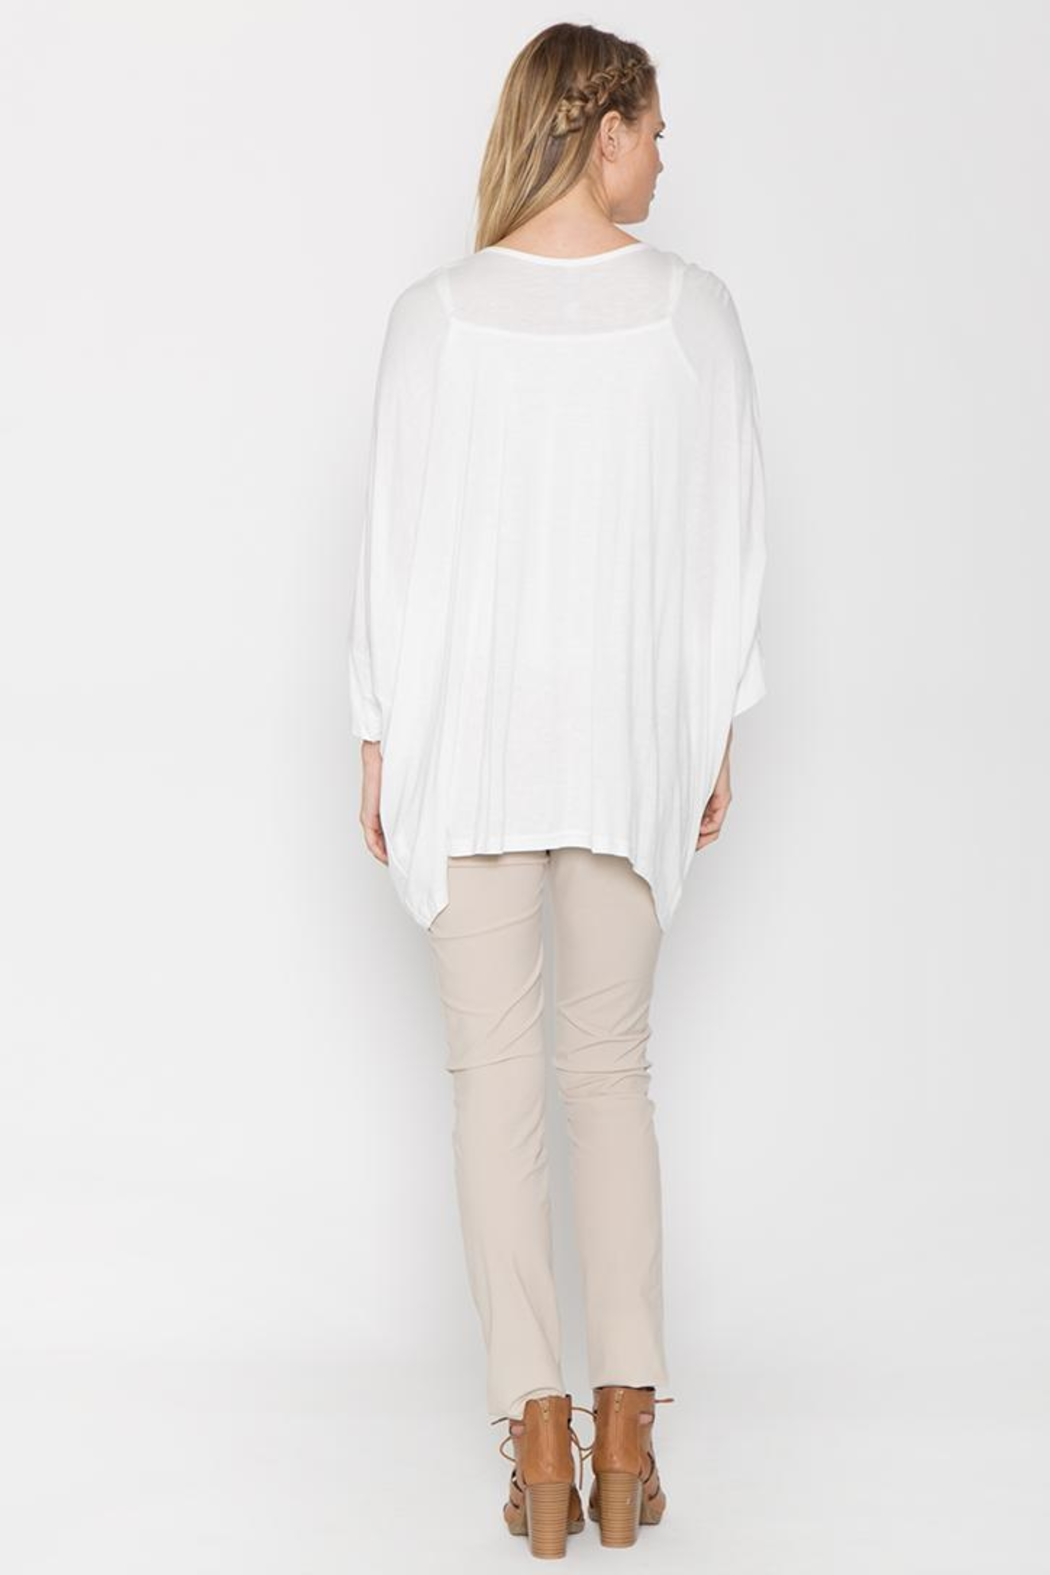 Monoreno Loose-Fit Embroidered Tee - Front Full Image